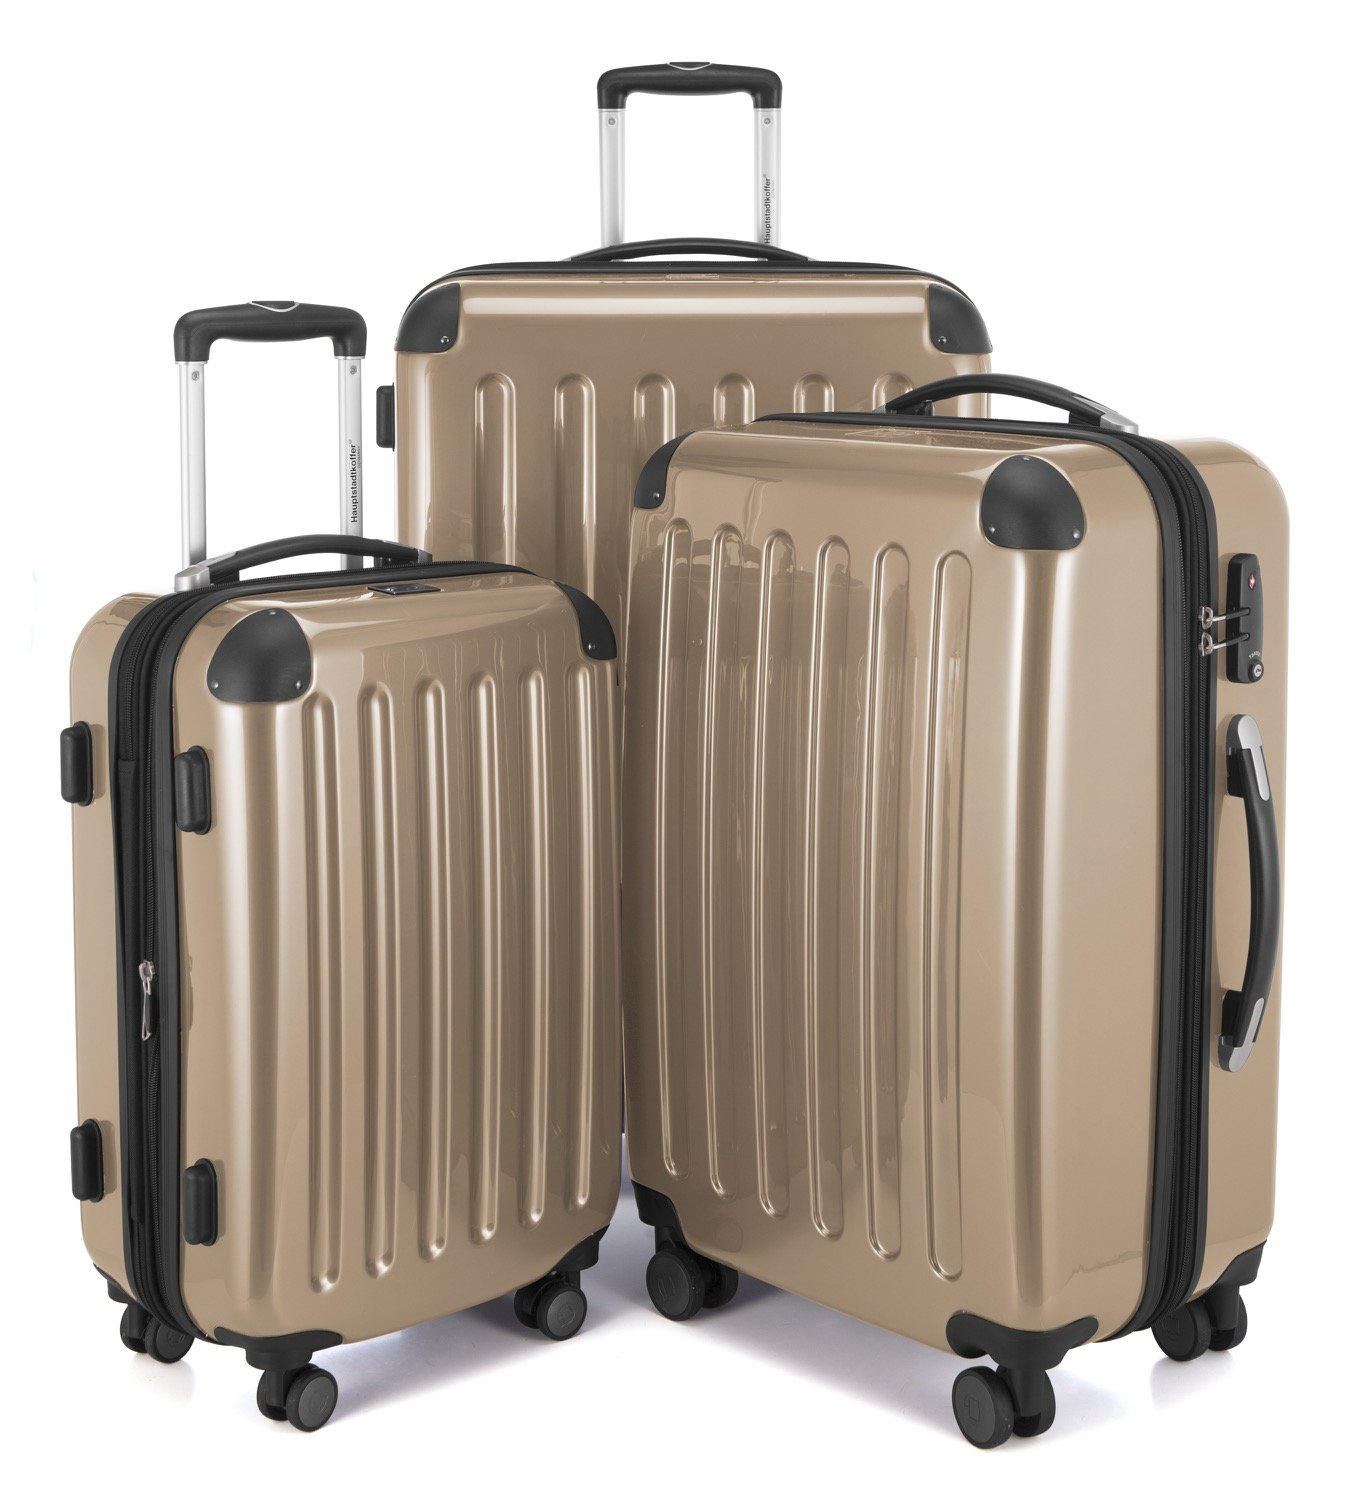 HAUPTSTADTKOFFER Alex Double Wheel Luggage Set 18 Different Colors Suitcase Set Size (20'24'28') Trolley TSA Red HK-8278TSA-R-82780012